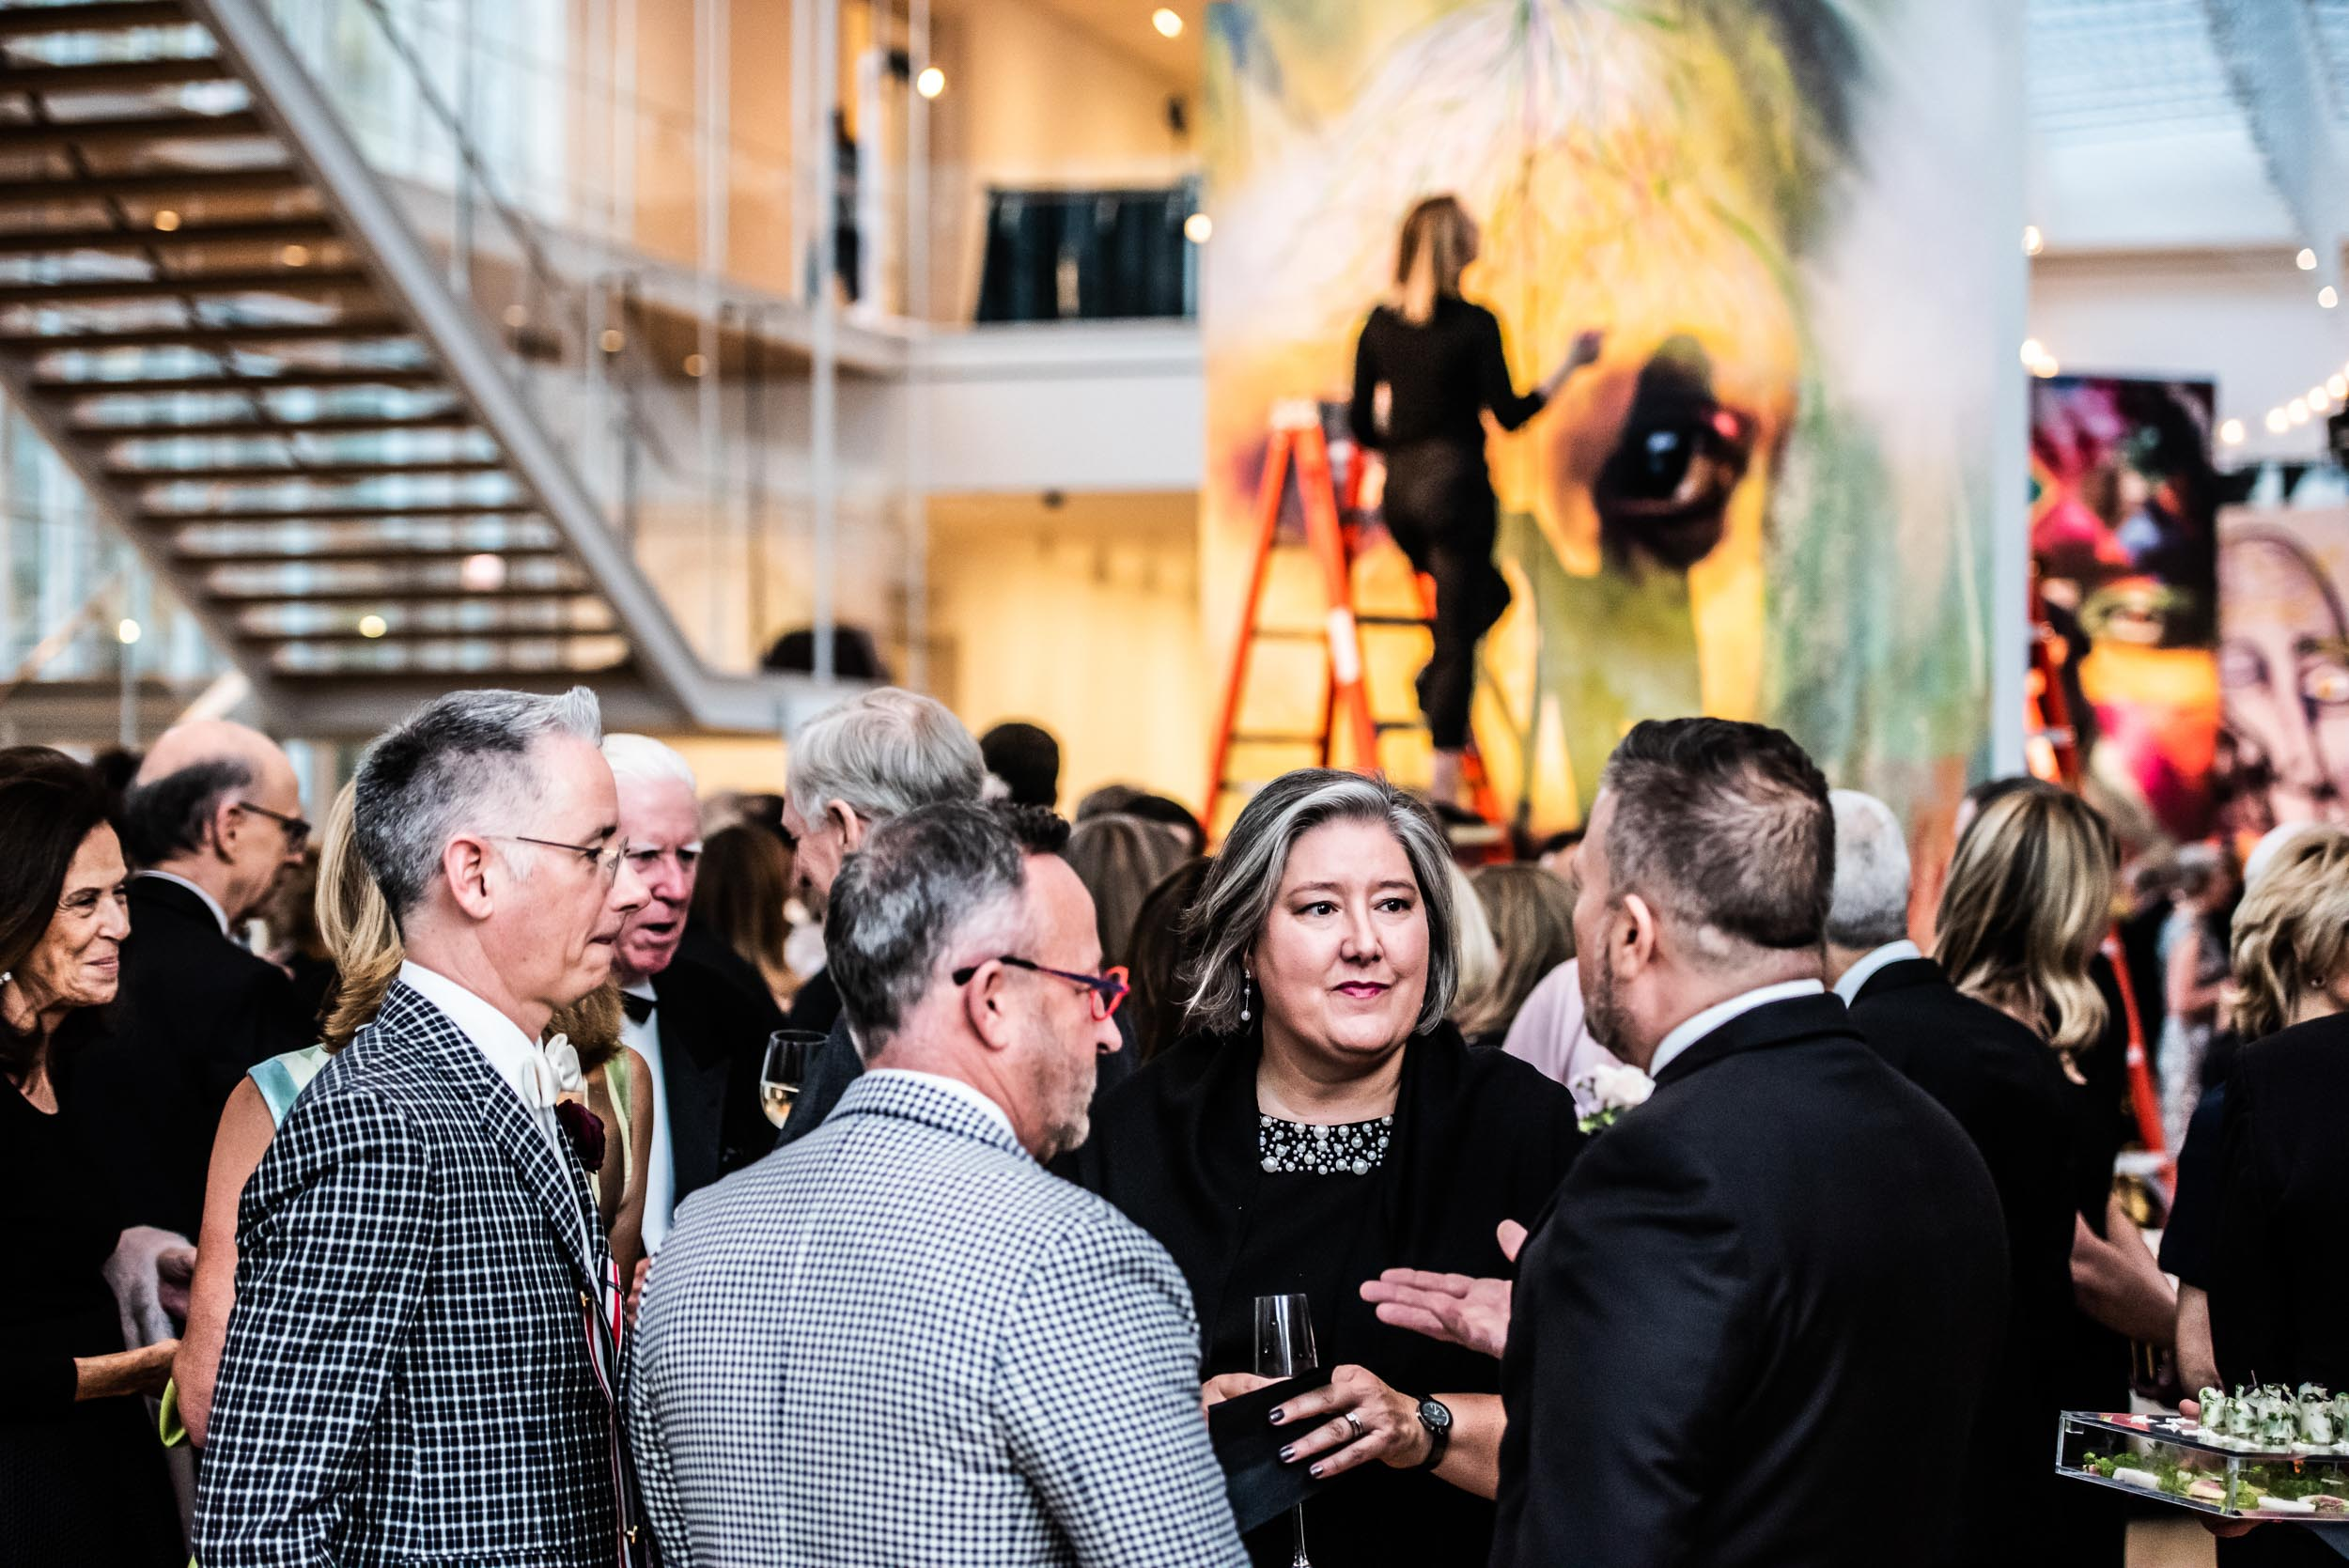 MASTERPIECE19 GALA - We were honored to photograph this centerpiece of the Art Institute's year.